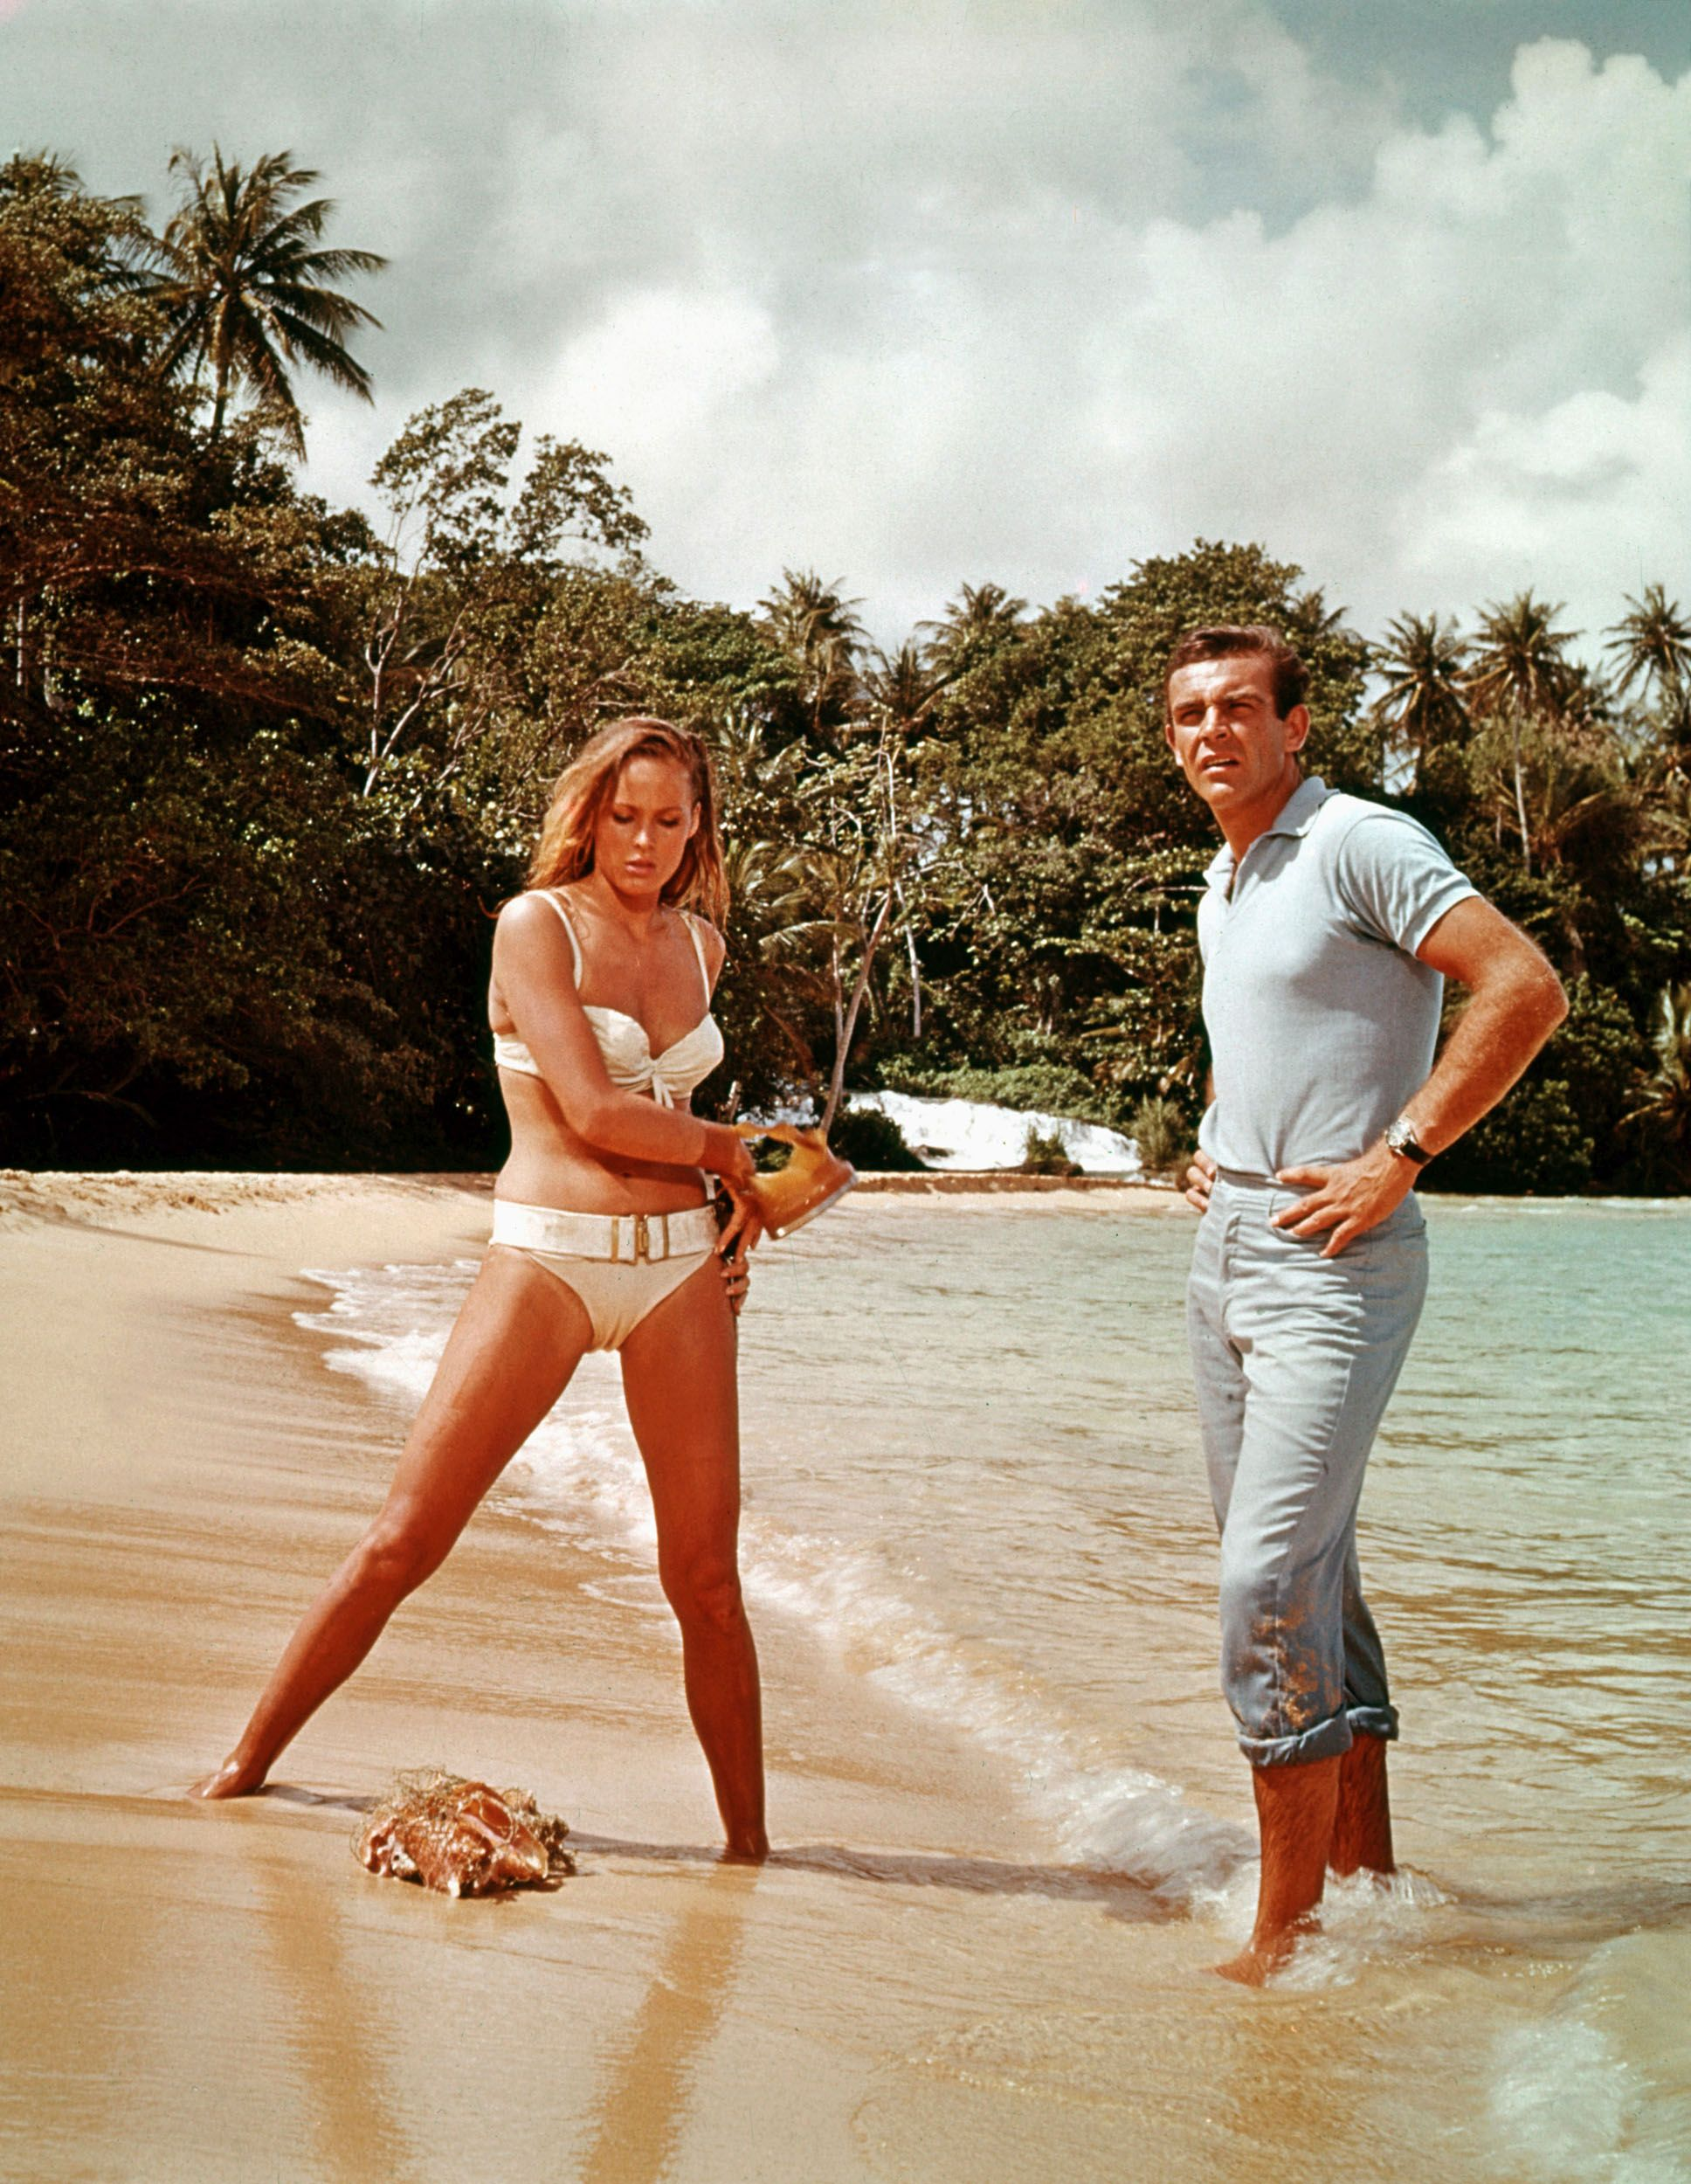 Ursula Andress and Sean Connery on the shore in a scene from Dr. No.